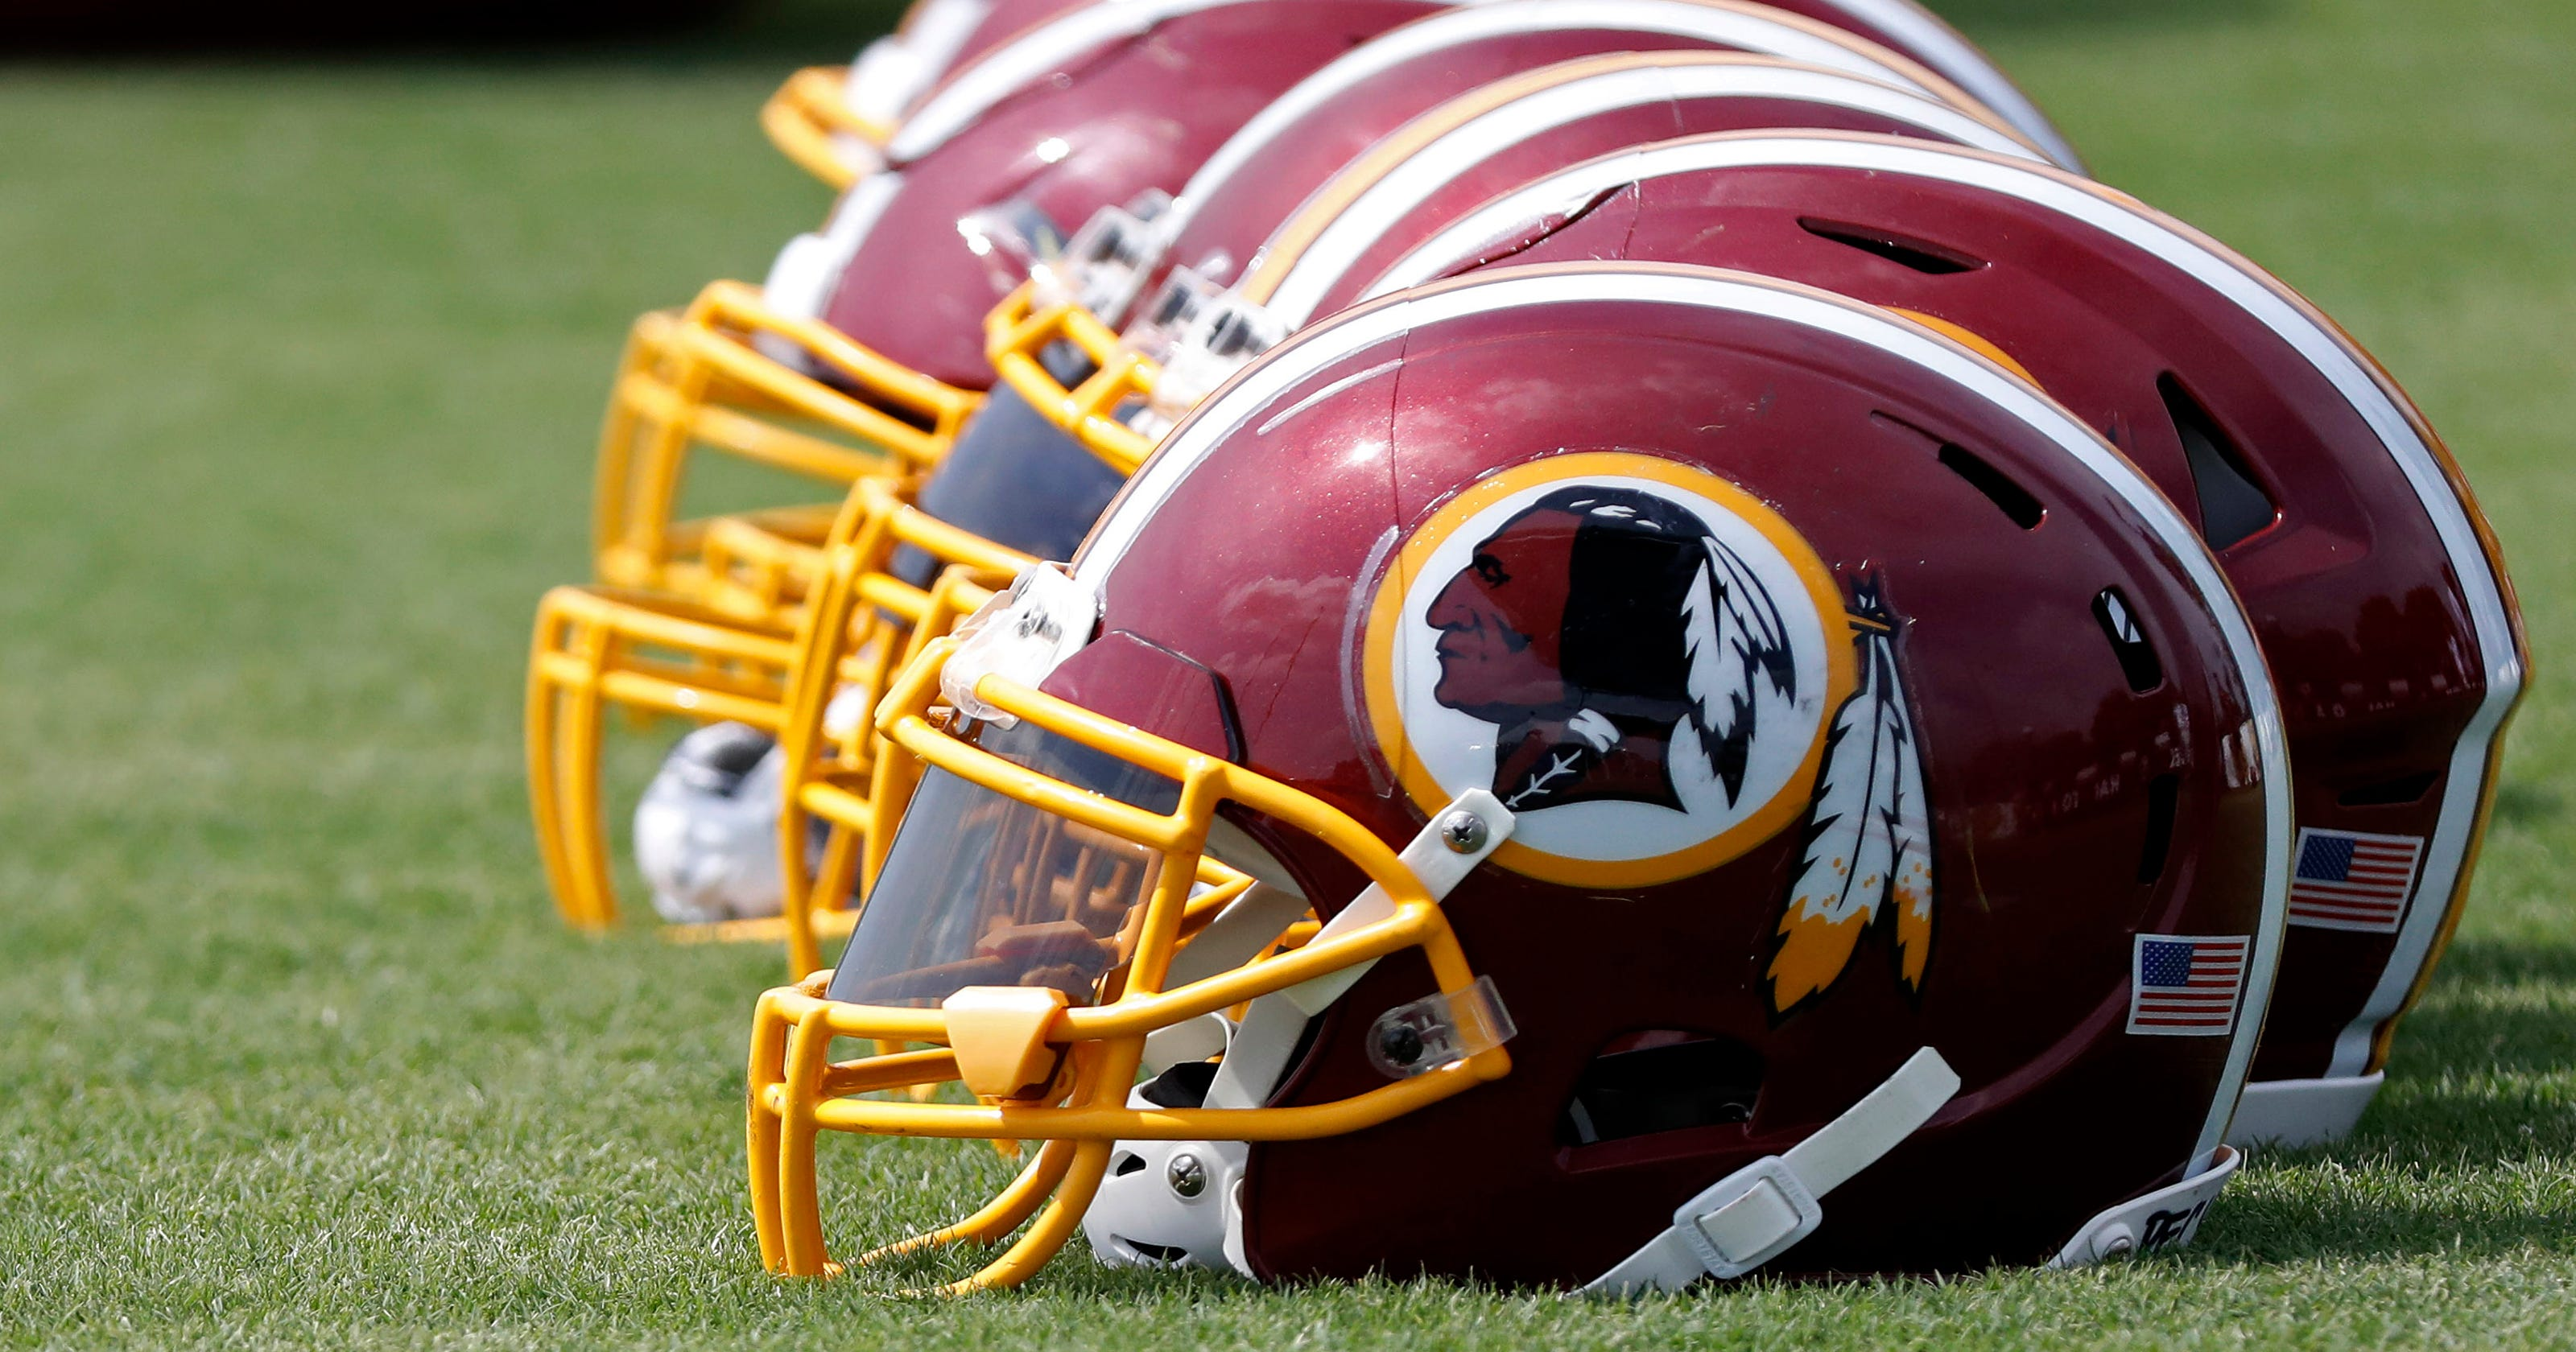 d259dab3 Redskins: Maryland elementary school bans clothing